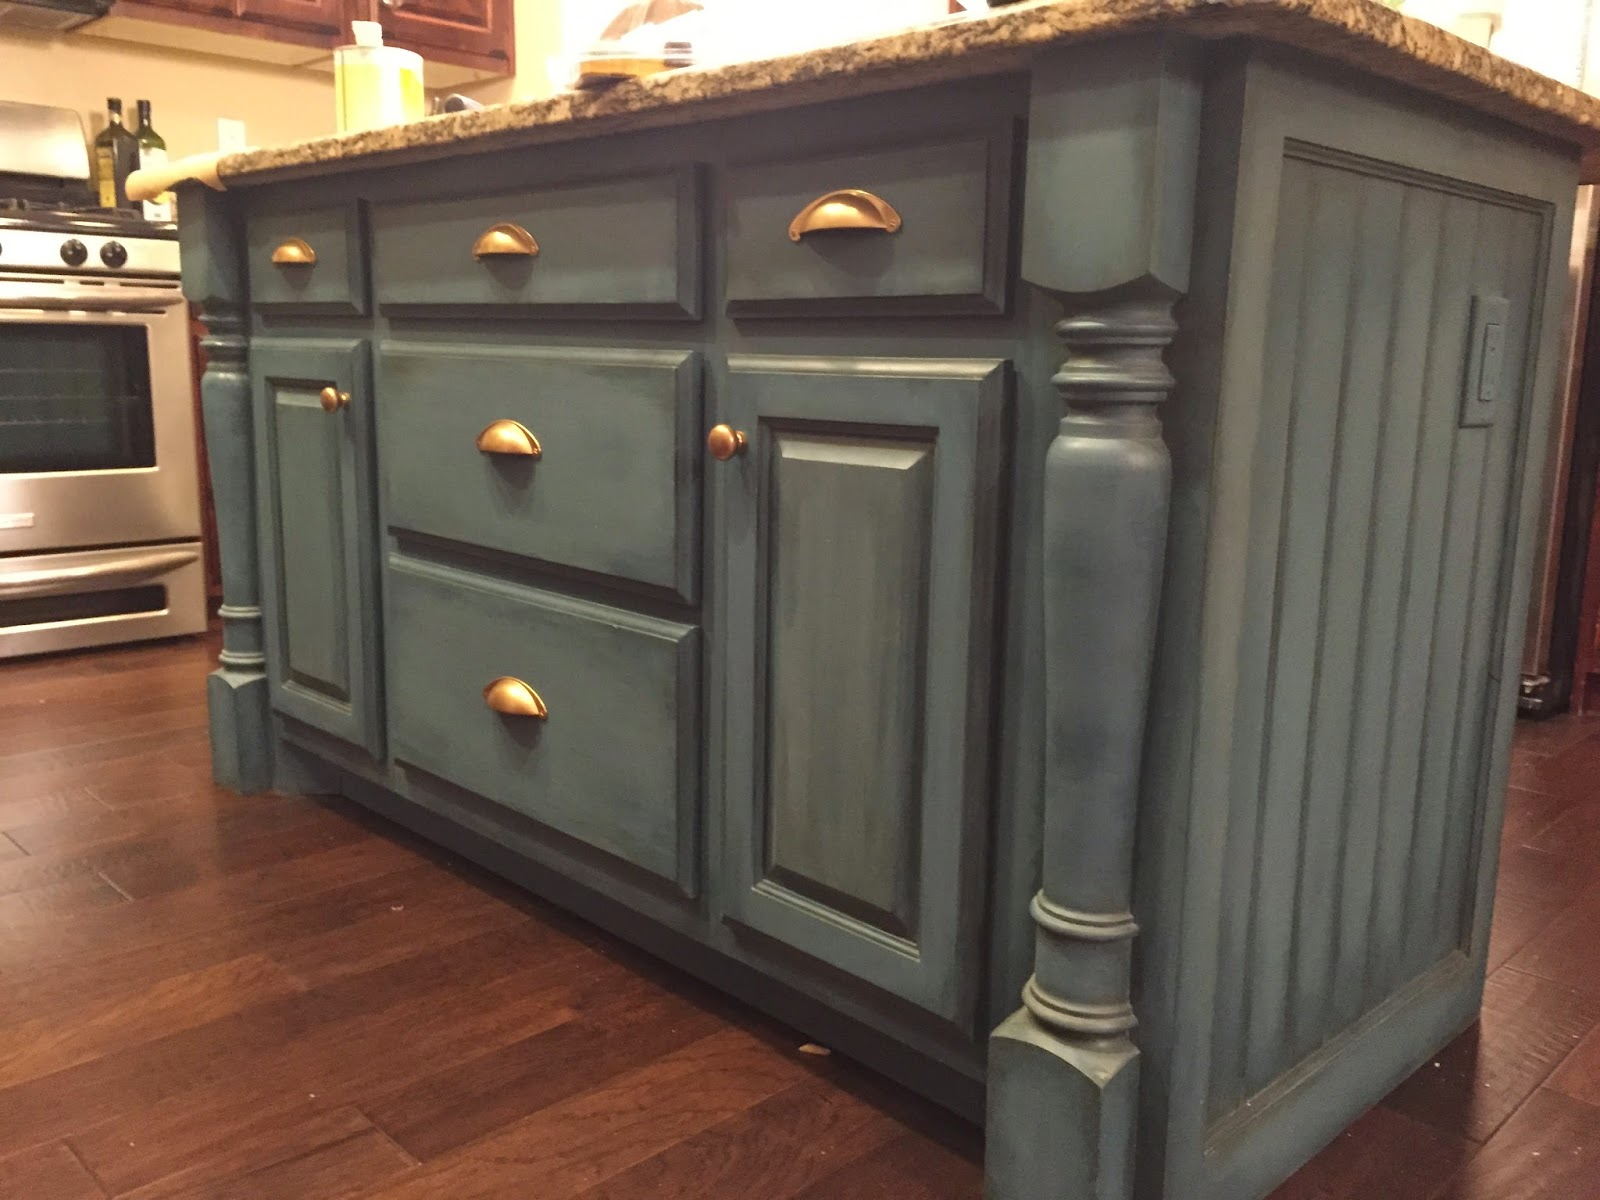 After All This Is To Be MY Kitchen, Not Everyone Elseu0027s. Introducing  Aubusson Blue By Annie Sloan. Thatu0027s Right, Chalk Paint In My Kitchen.